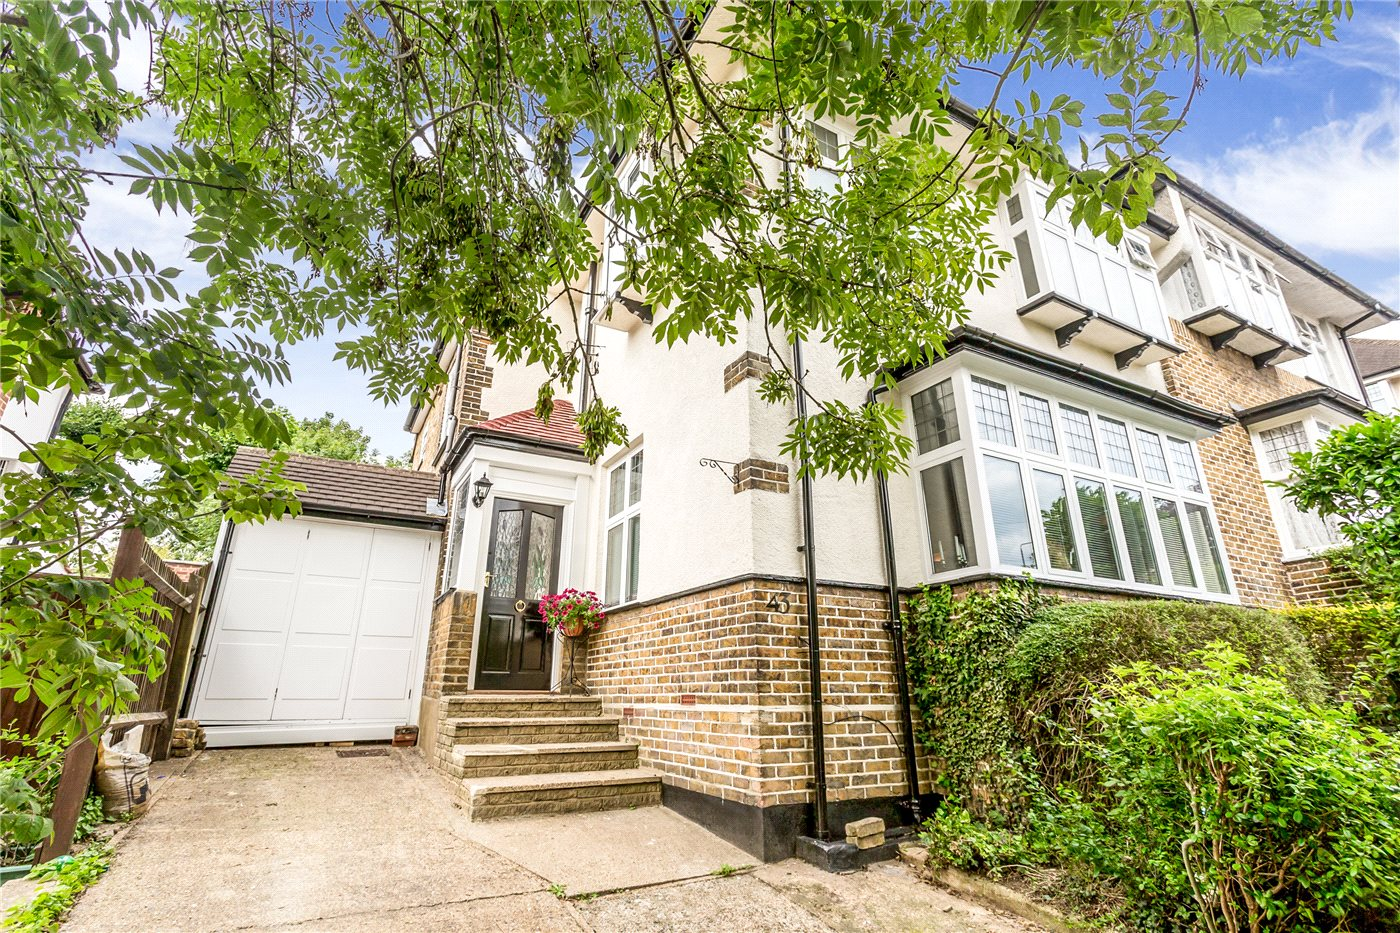 4 Bedrooms Semi Detached House for sale in Slades Hill, Enfield, EN2